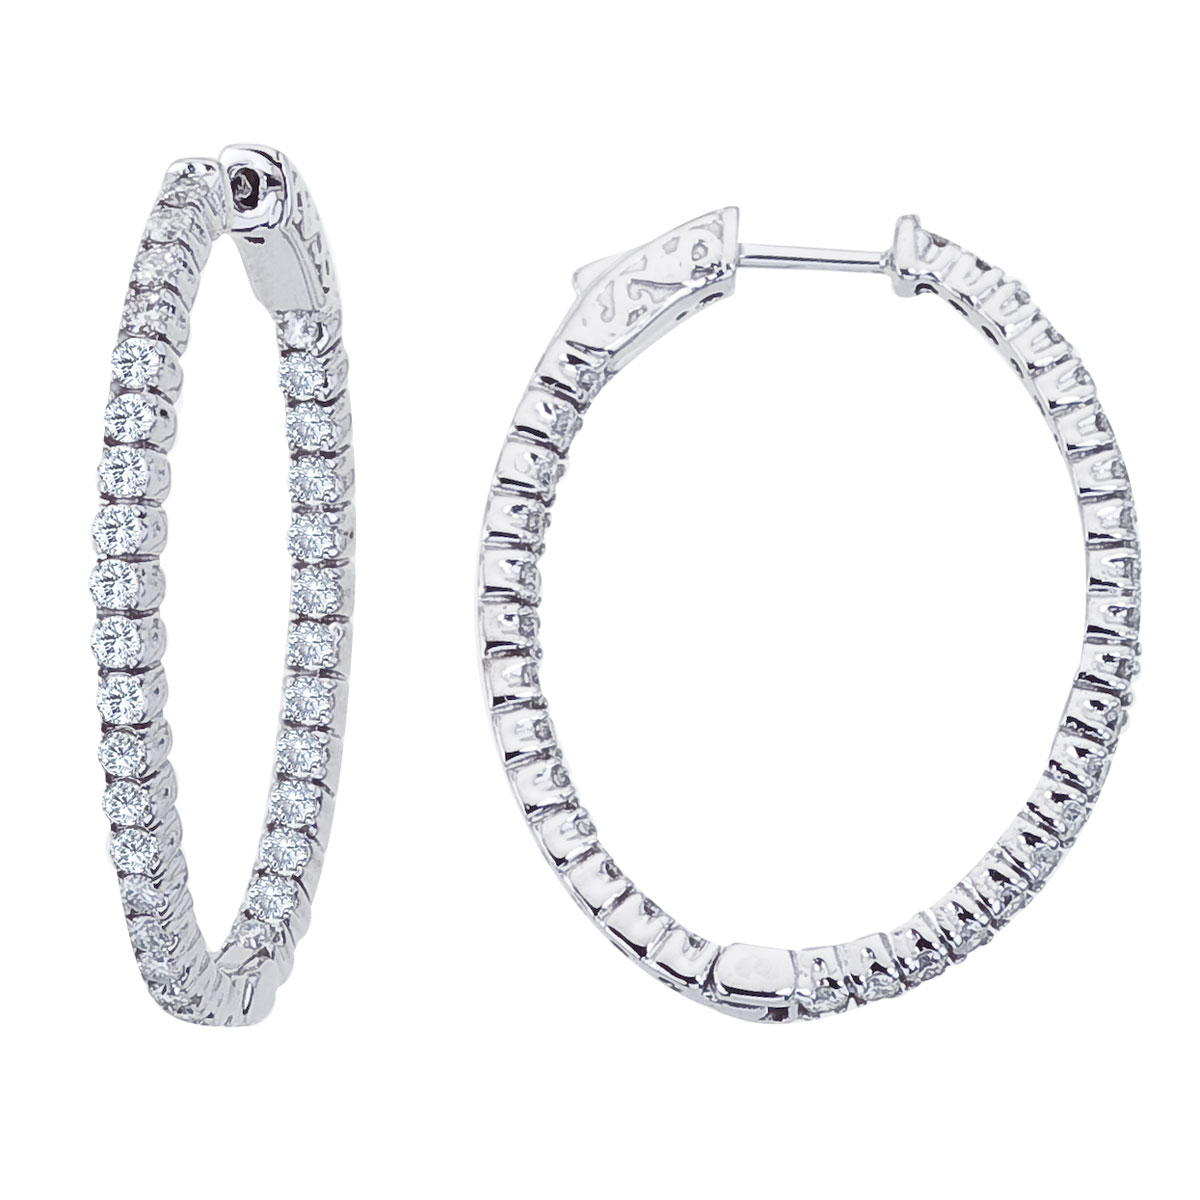 These 30x35 mm patented secure lock inside-outside diamond hoop earrings feature 1.98 carats of stunning diamonds.